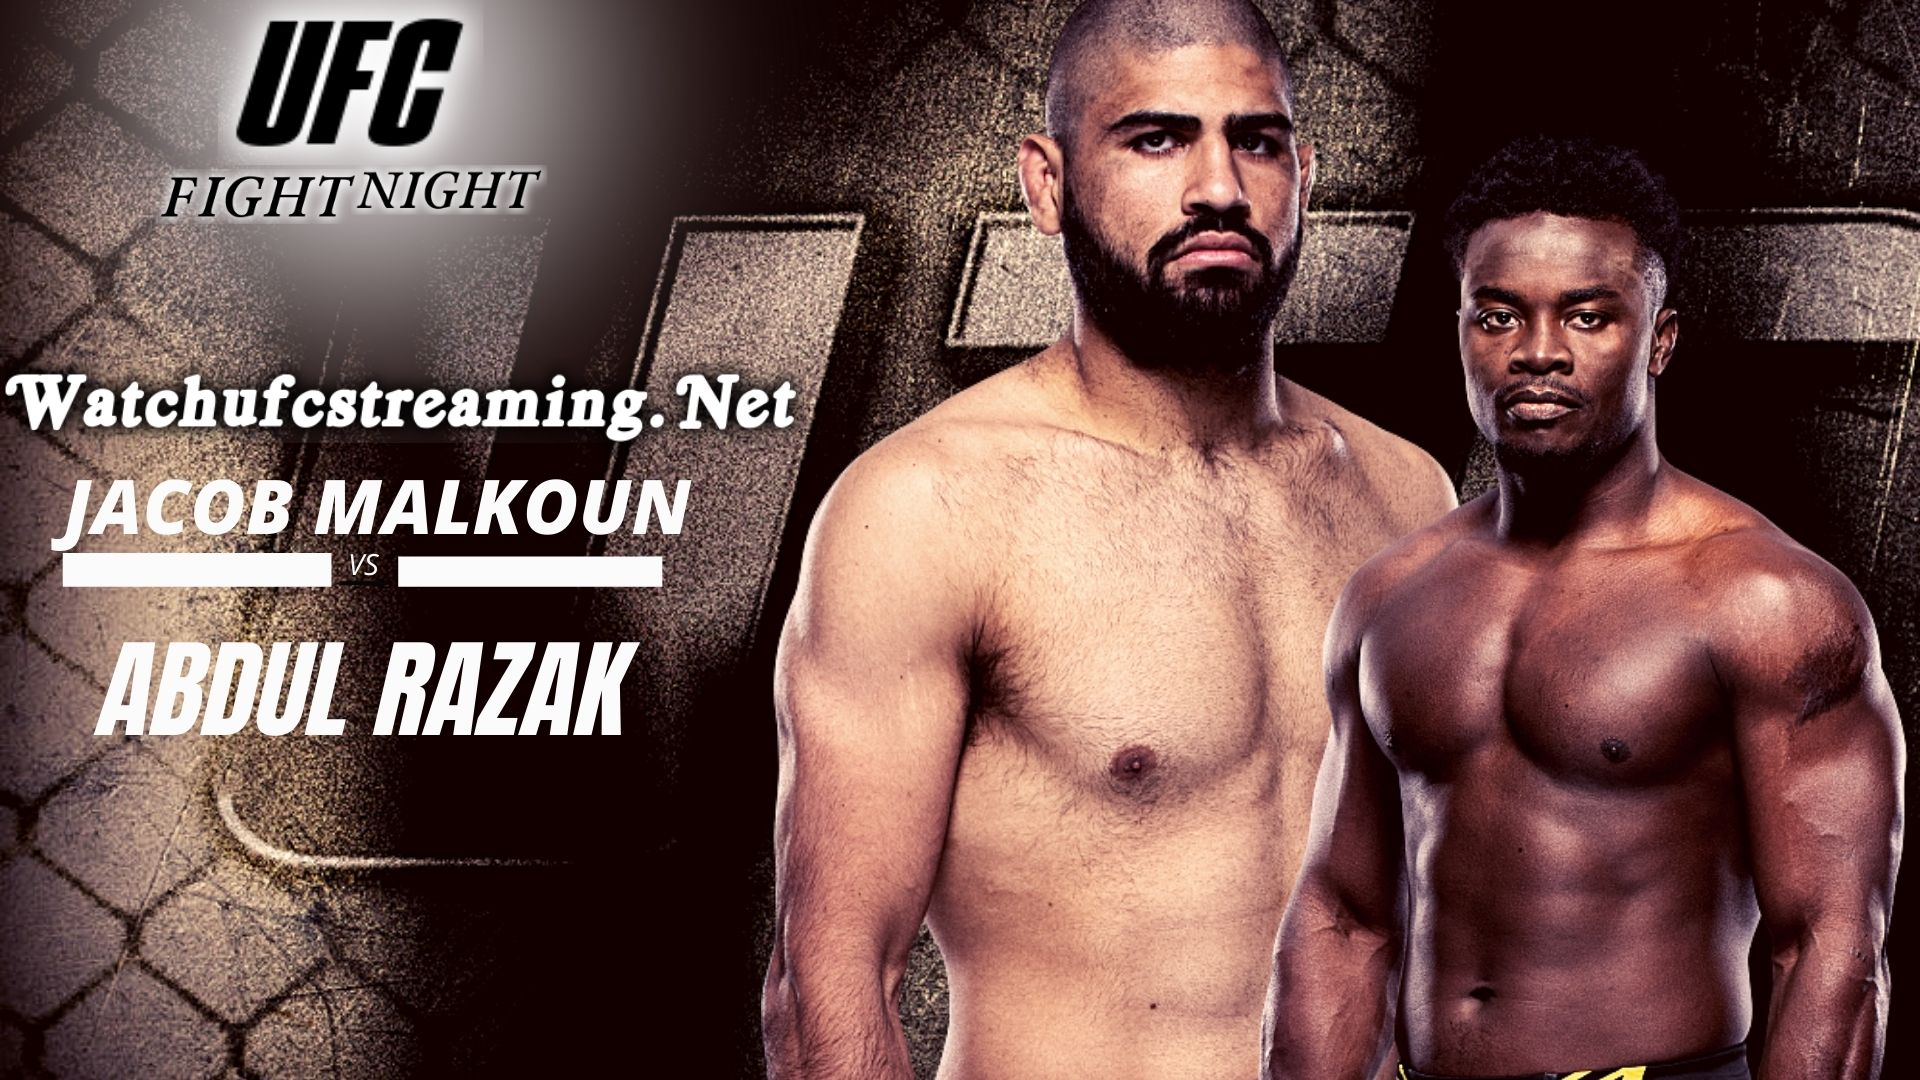 Highlights Fight Night: Malkoun Vs Abdul Razak 2021